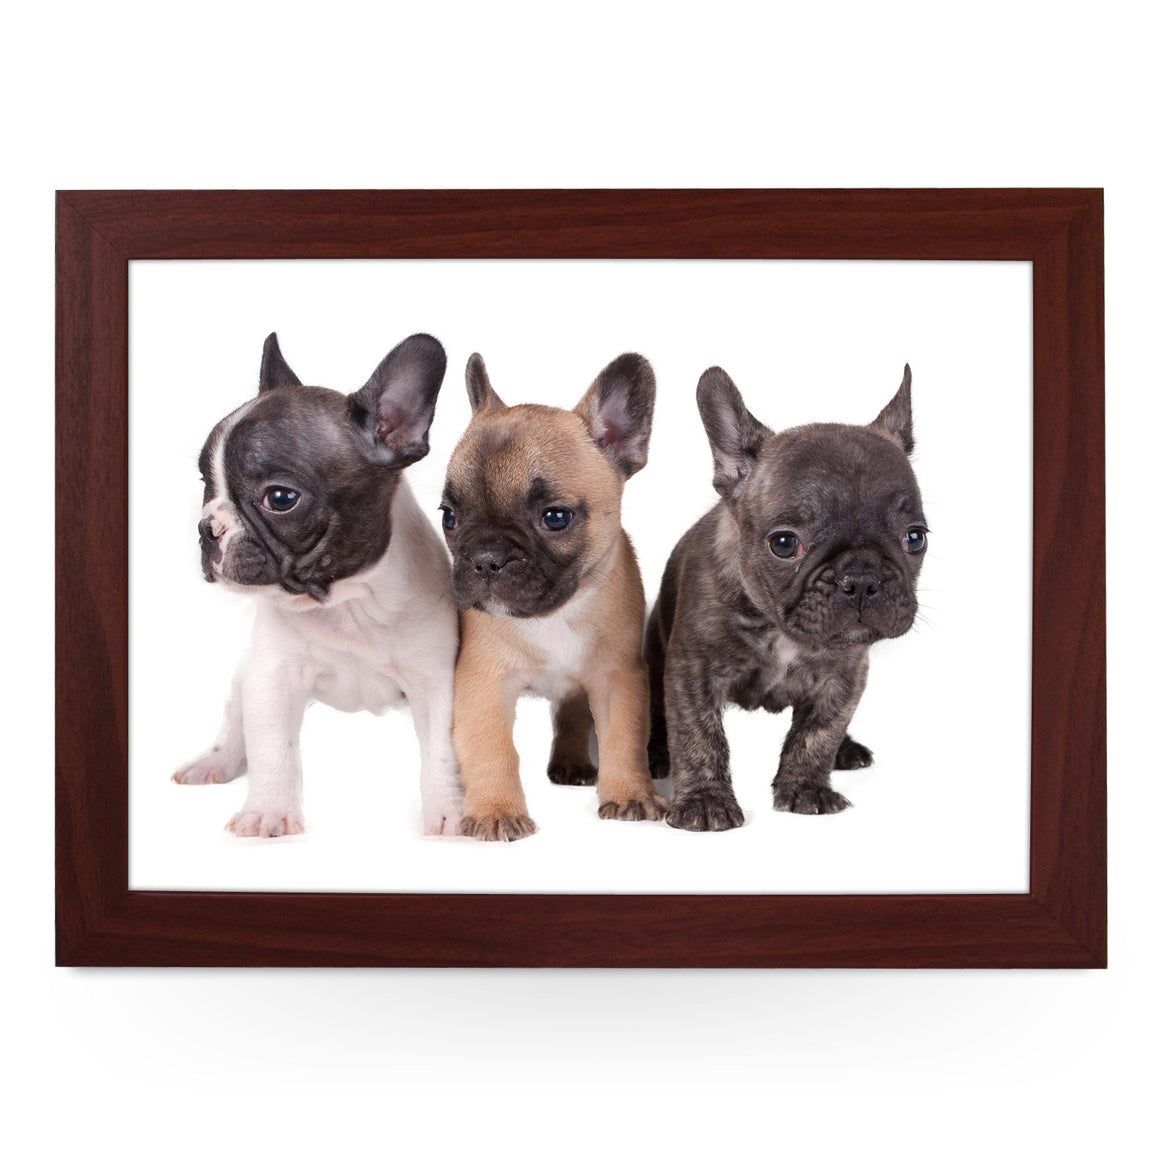 Three French Bull Dog Puppies Lap Tray - L0079